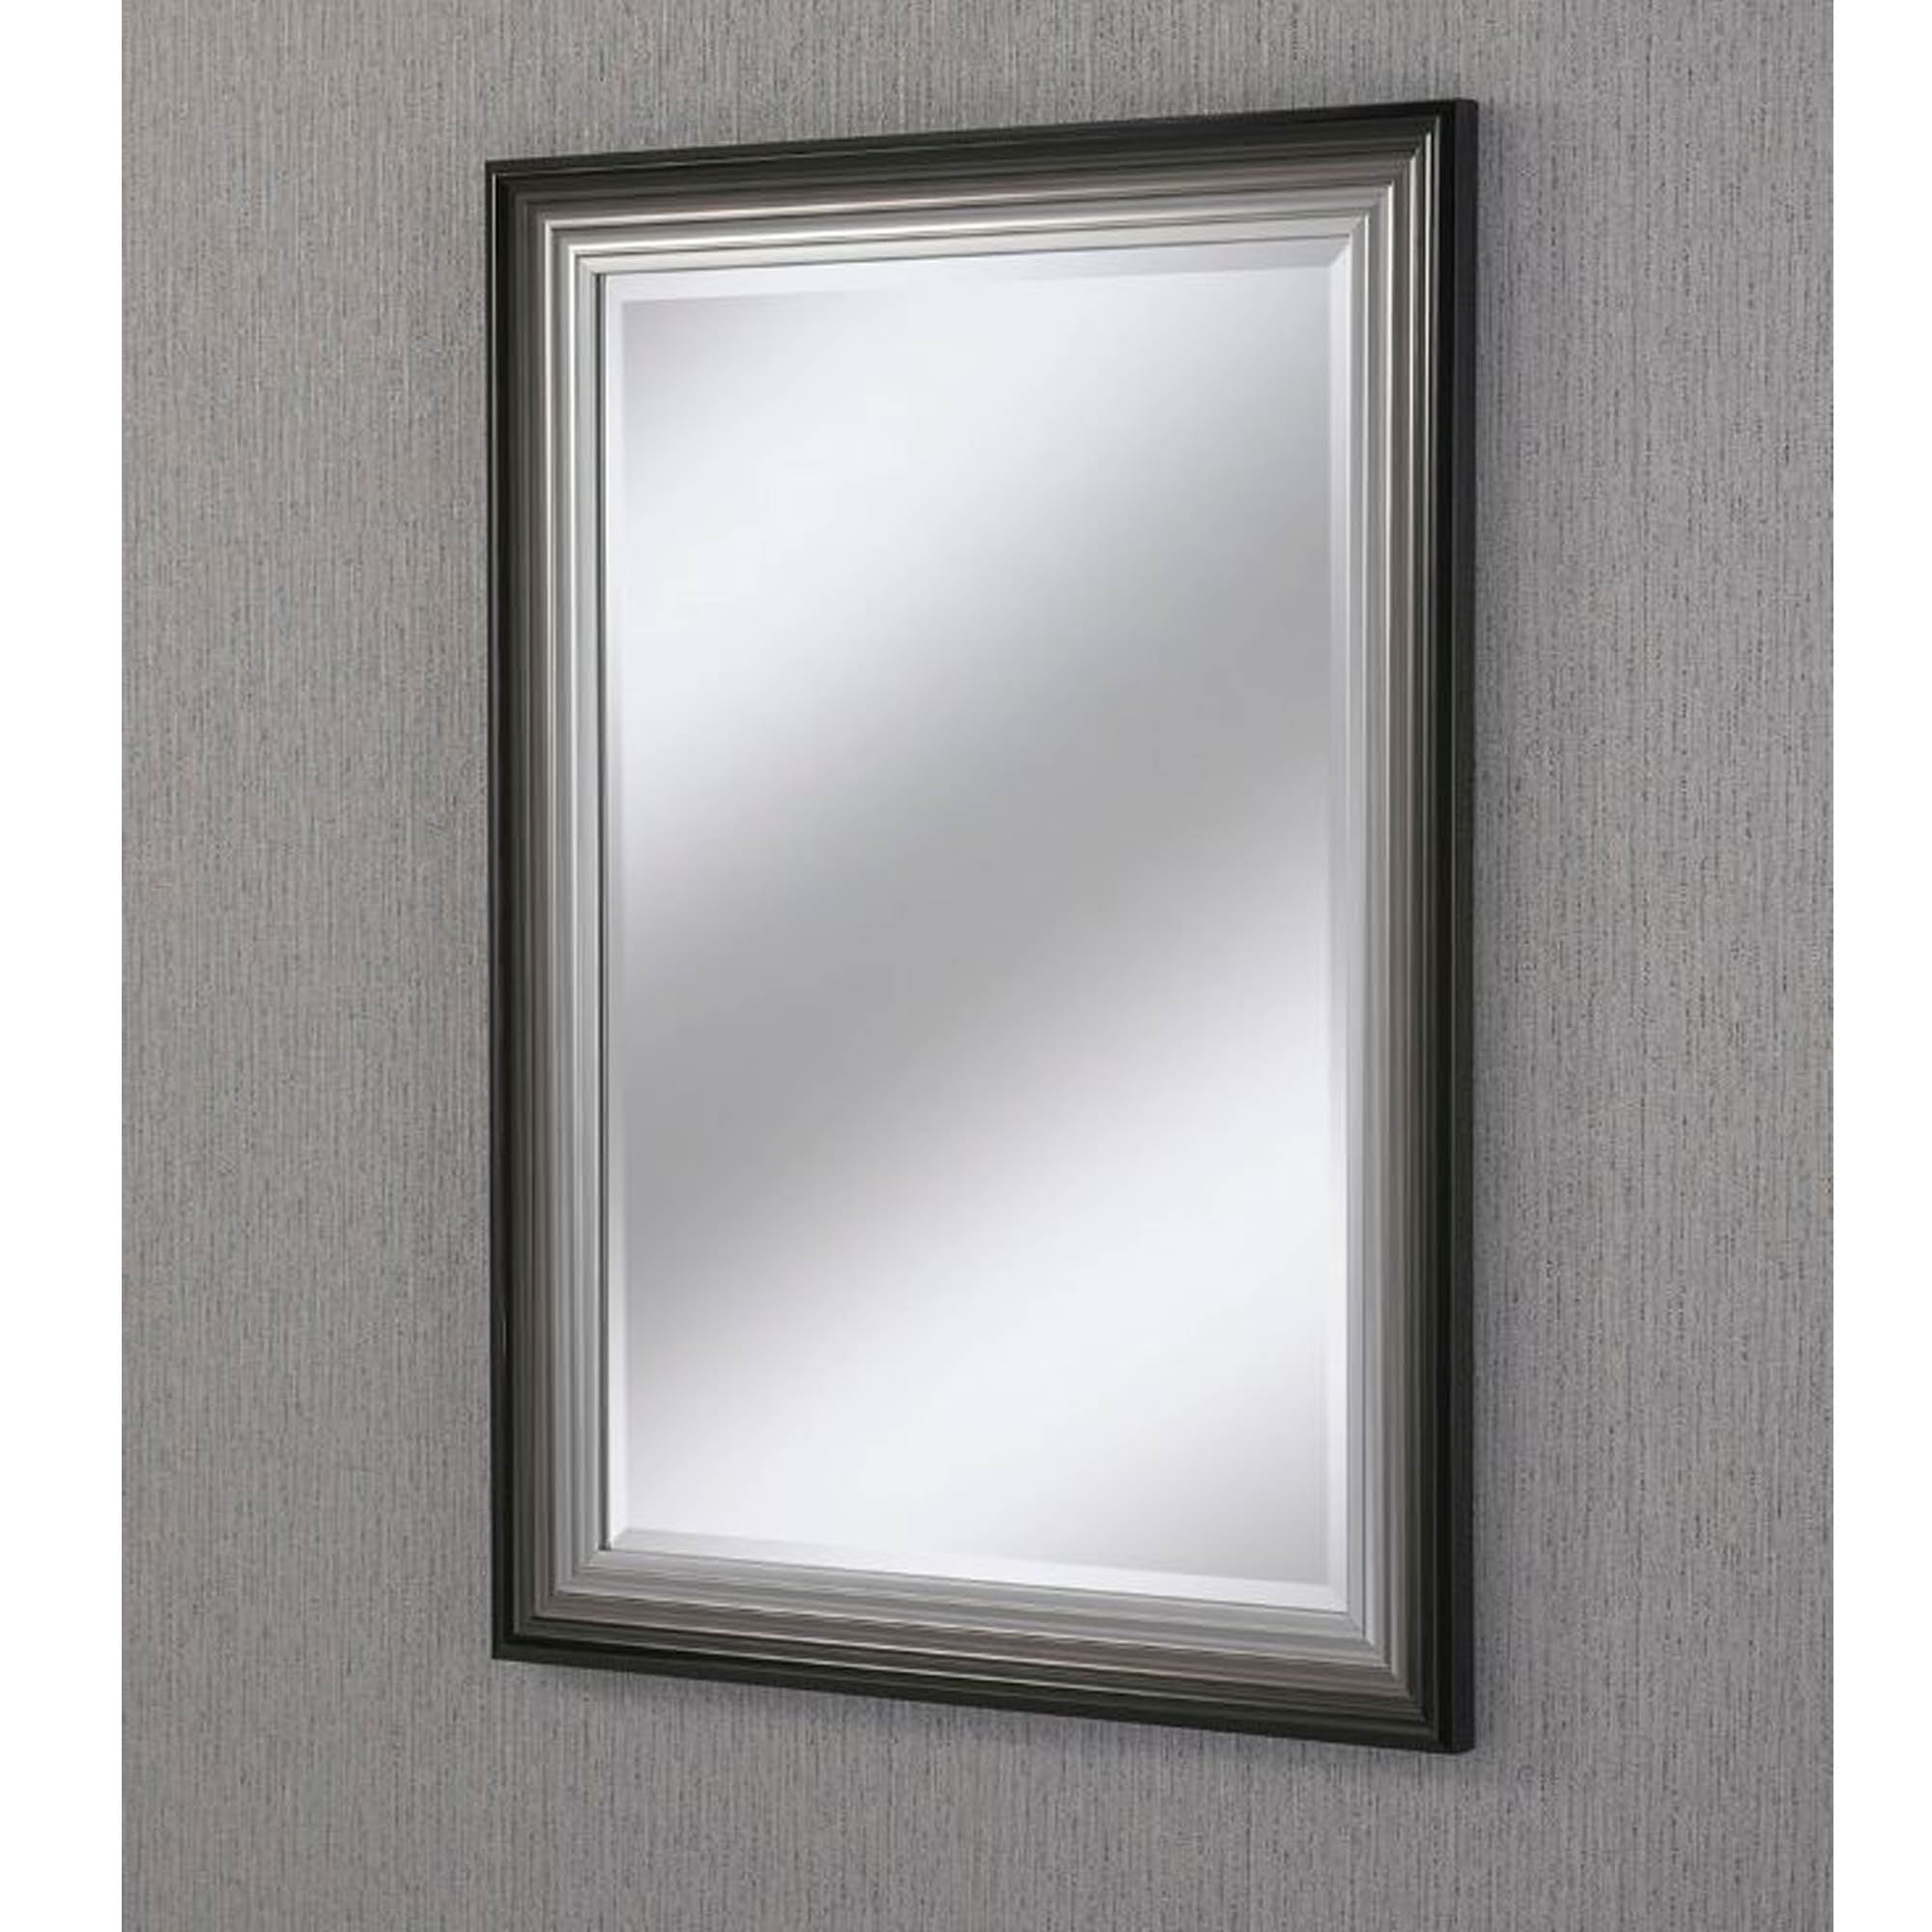 Rectangular Black/silver Beveled Contemporary Wall Mirror For 2020 Black Wall Mirrors (View 6 of 20)